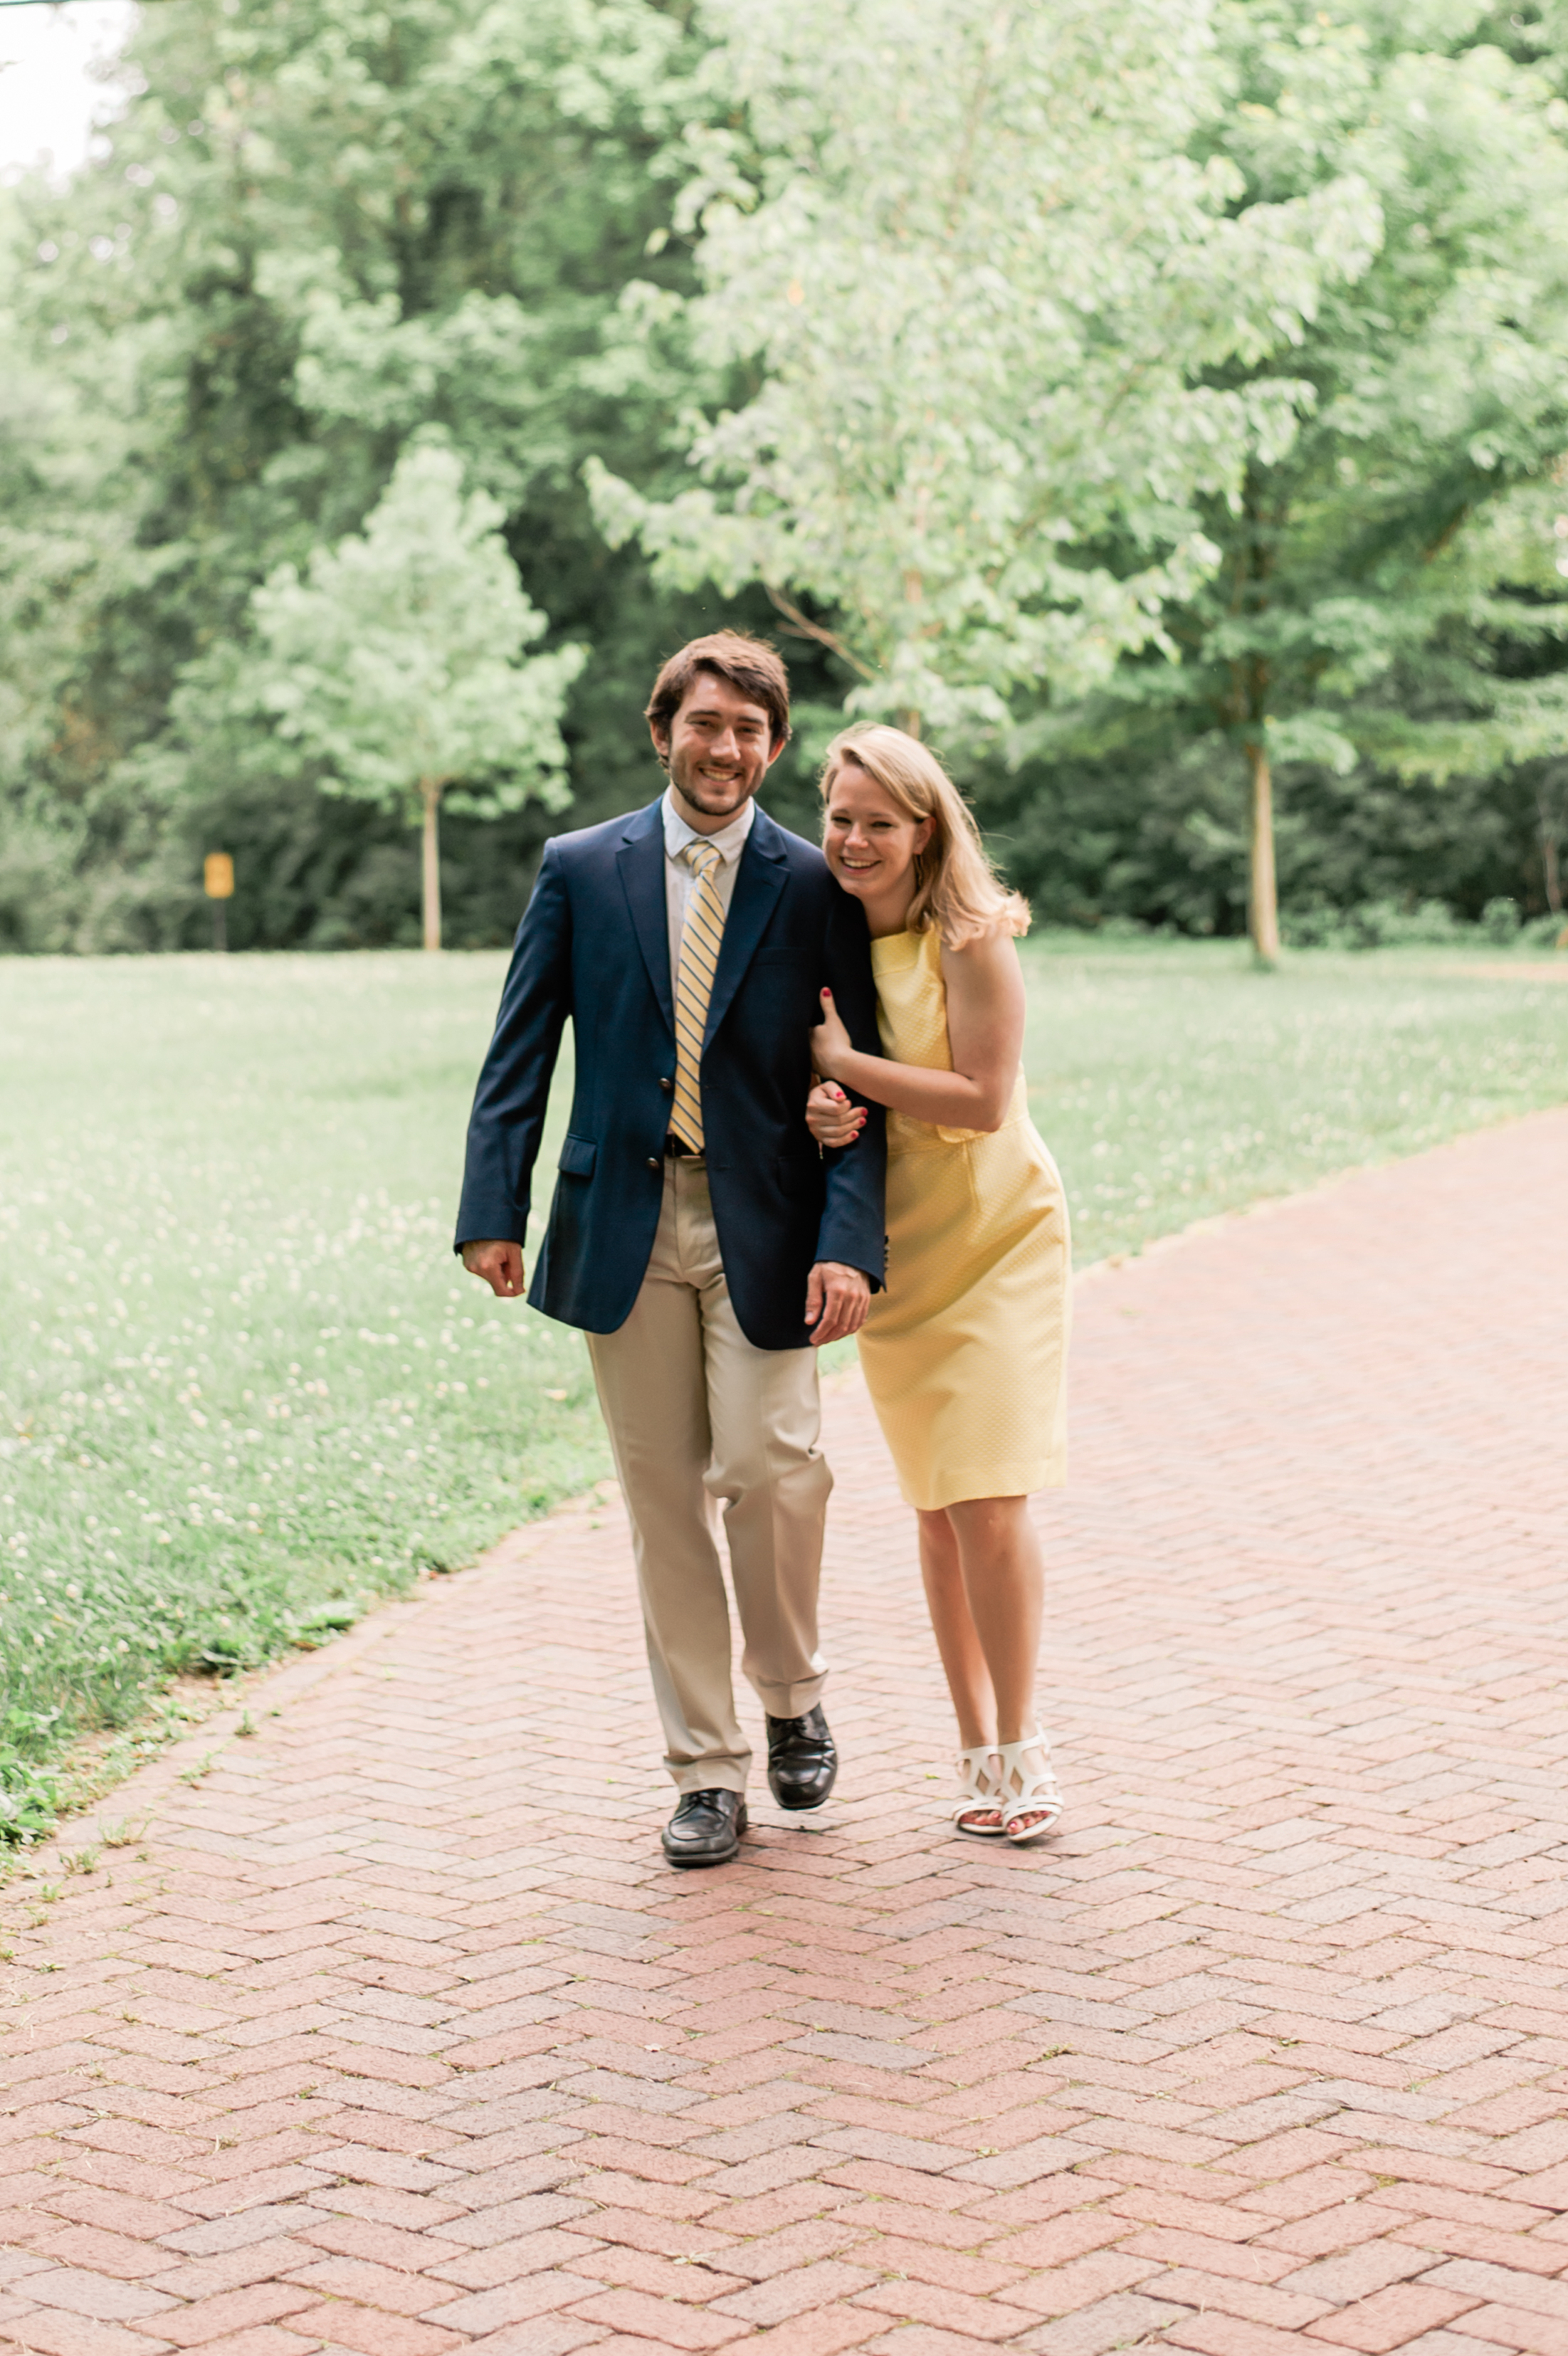 Annie + Andrew Engagement Blog Post-10.JPG